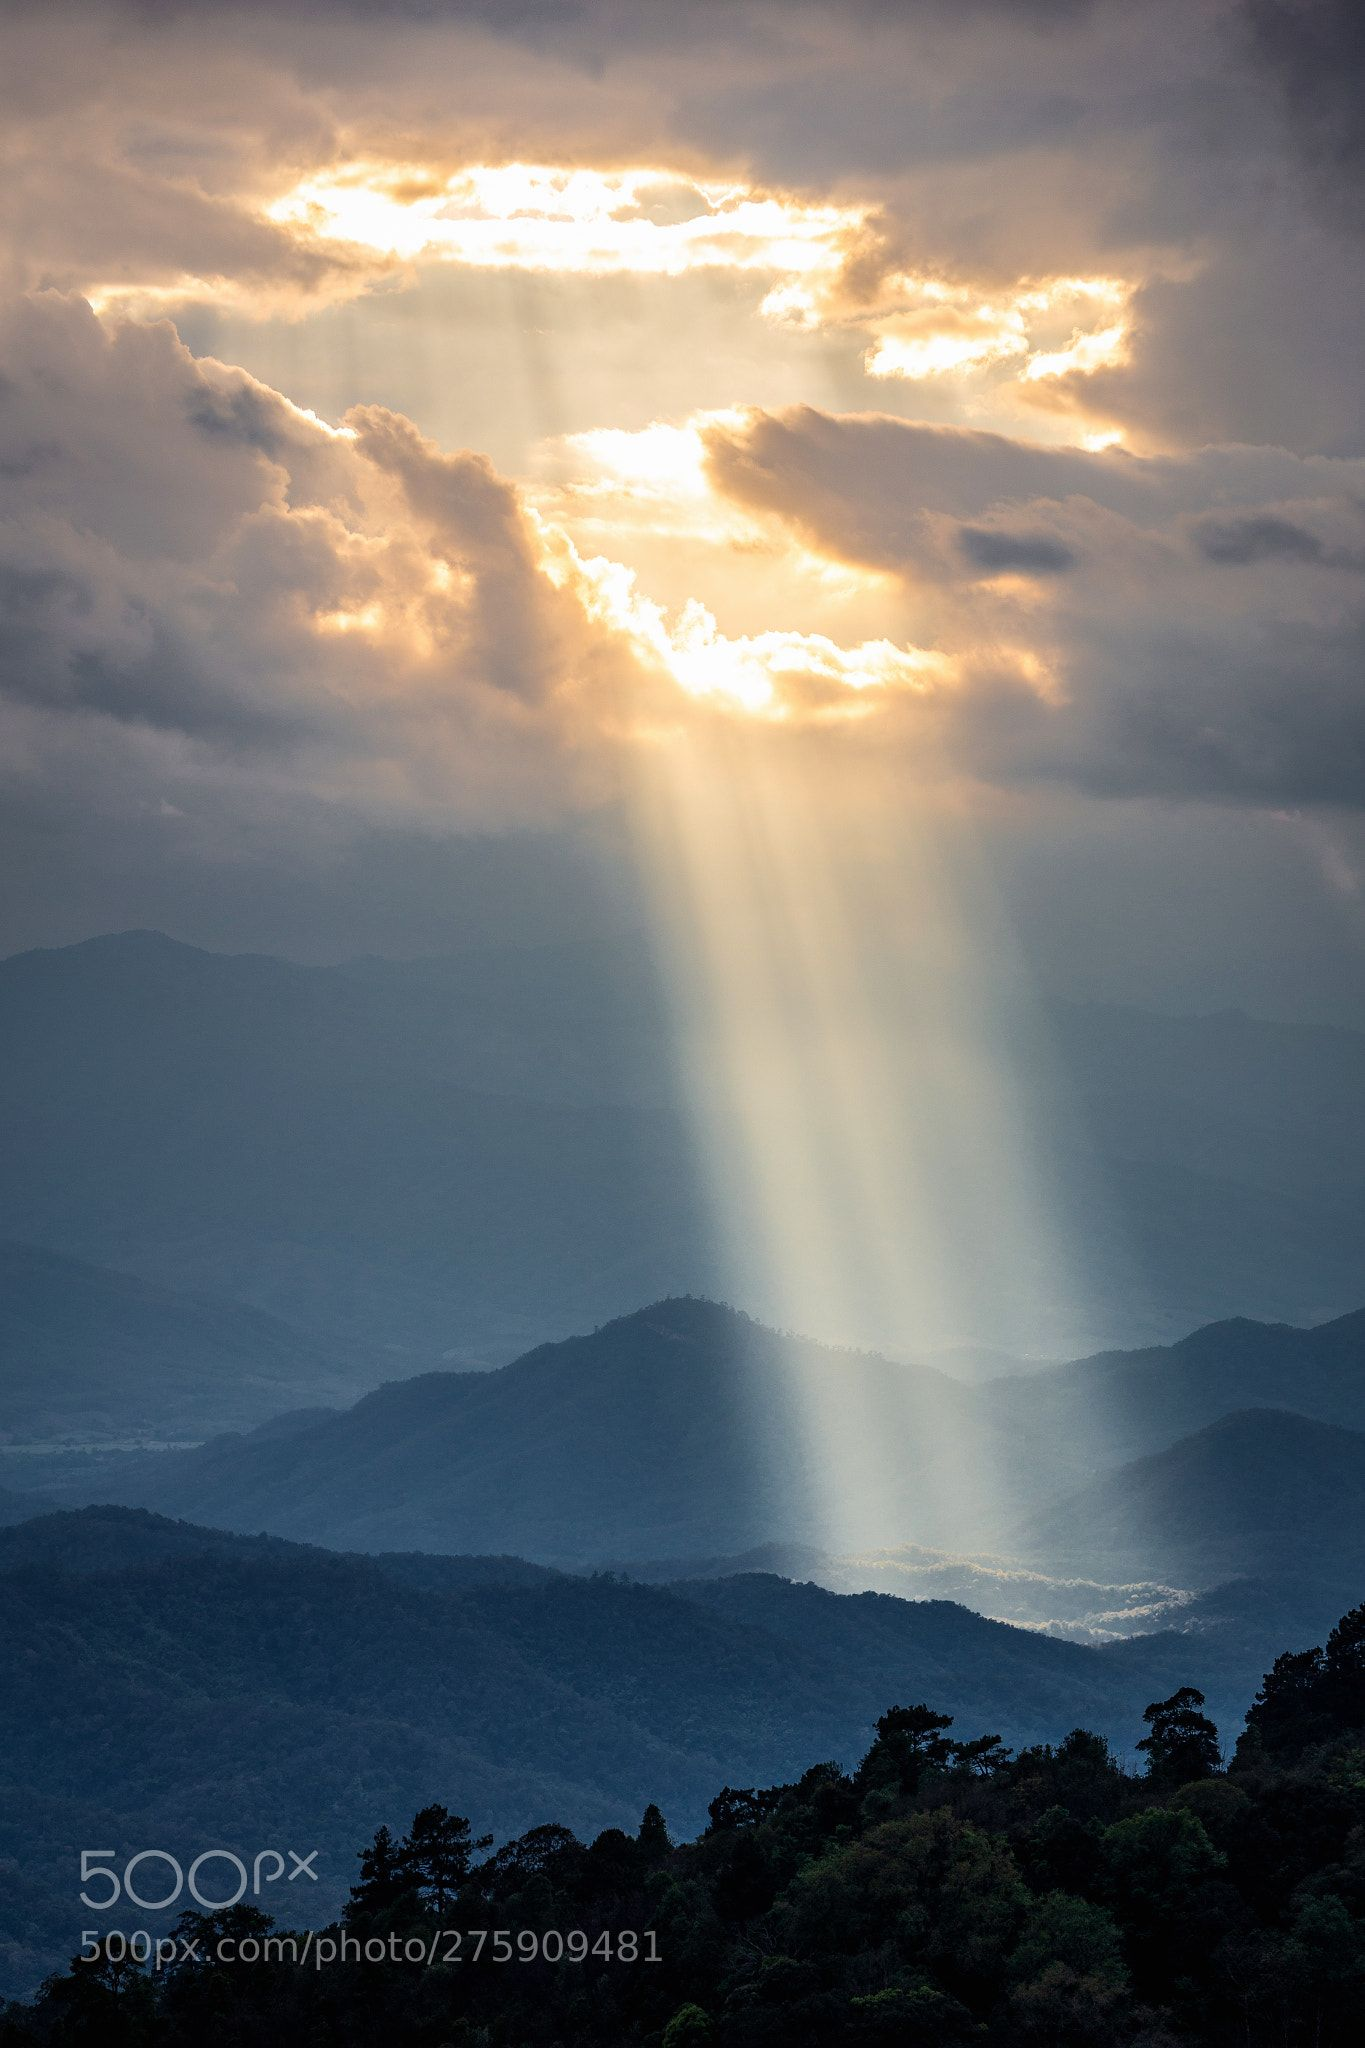 Sunlight Shining Through Hole Of Clouds To Dark Mountain Clouds Sky Aesthetic Clouds Photography